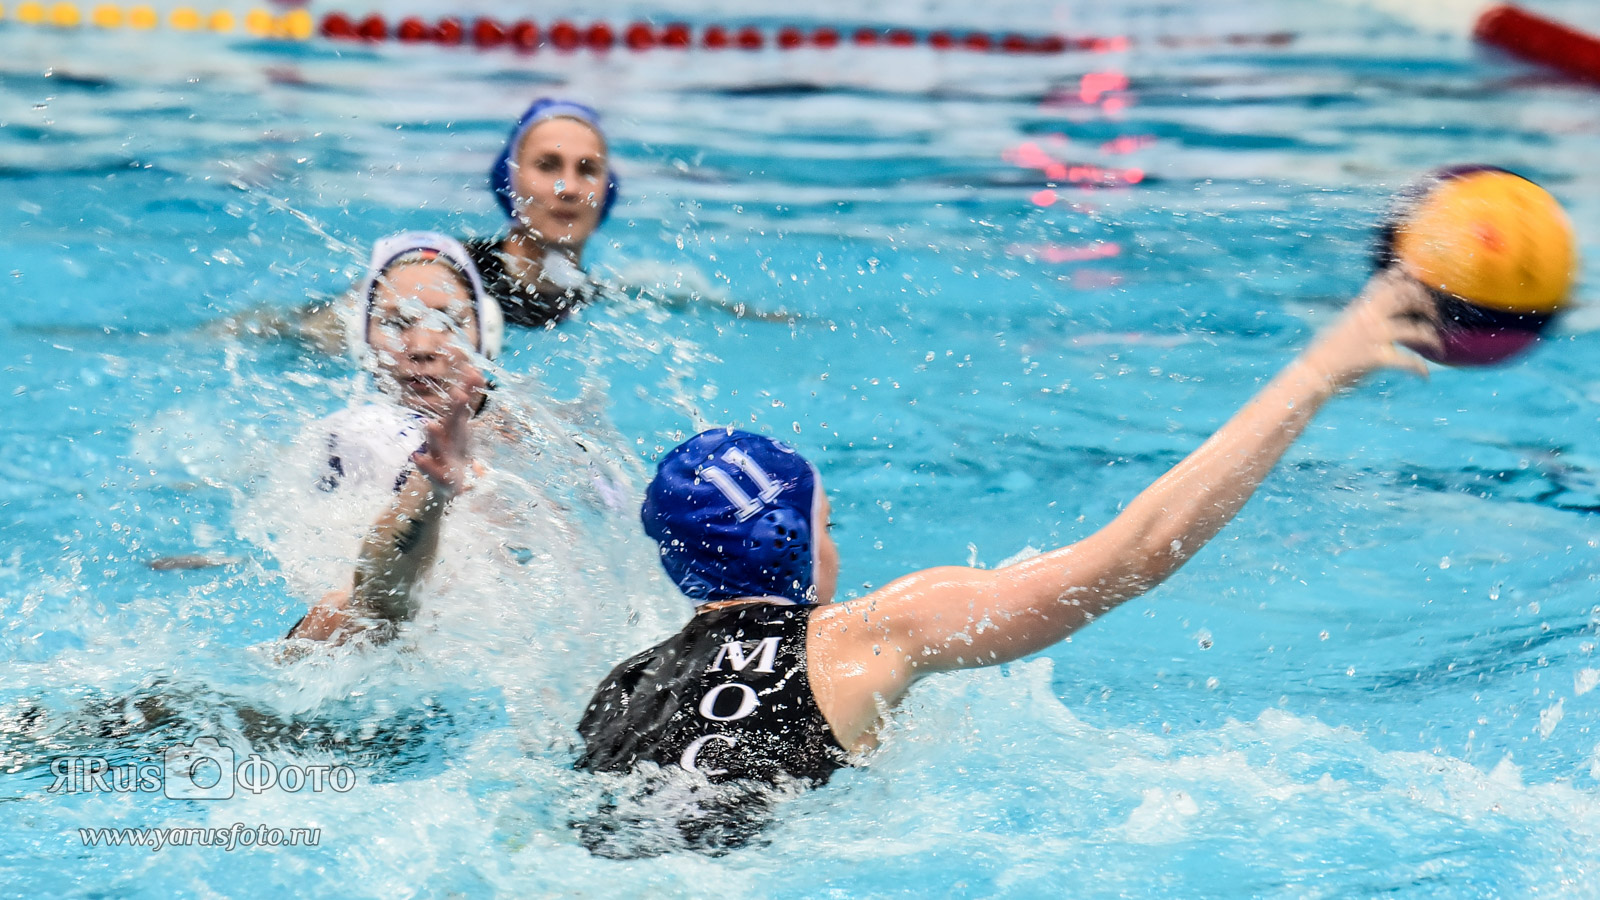 water polo essays The official athletic site of usa water polo - team sports are a fun outlet for anything ranging from stress to excess energy benefits of team sports for children are very similar to those for adults.